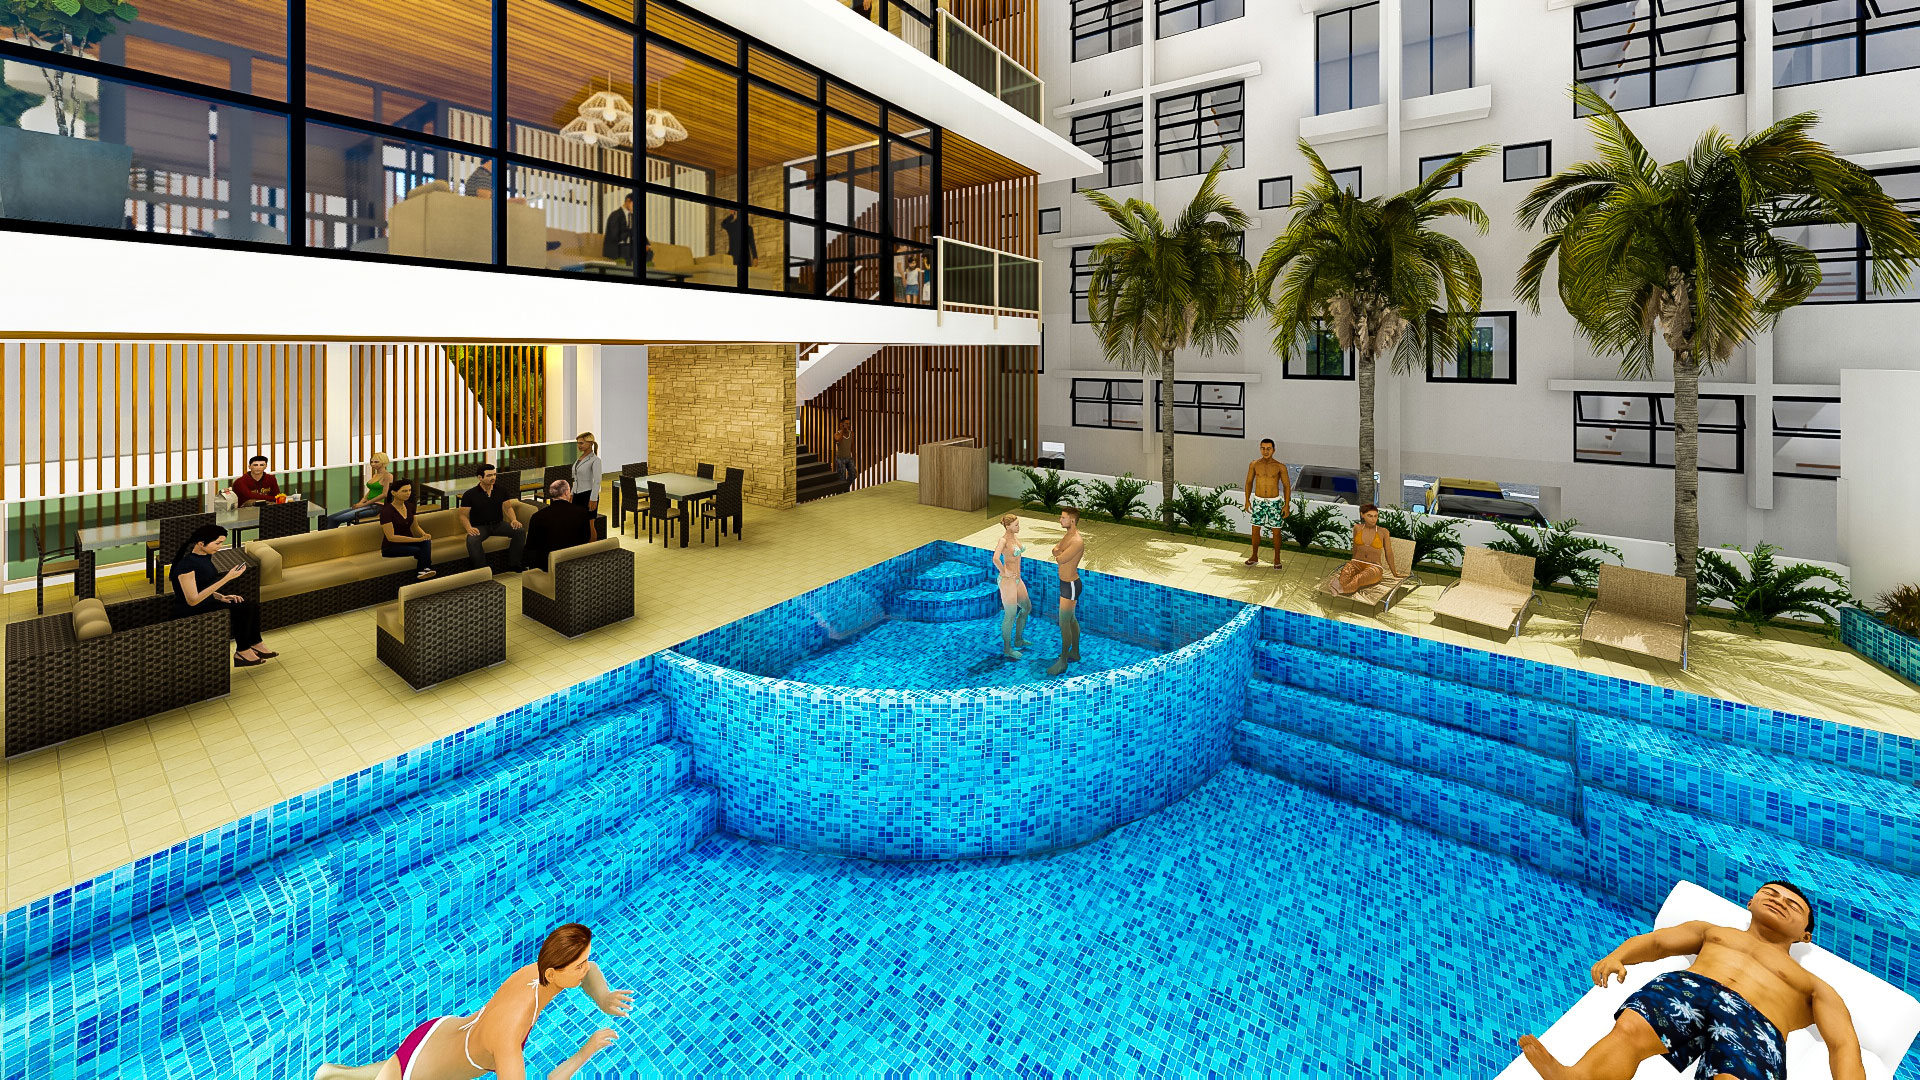 Clubhouse swimming pool phase 2 artist perspective al for Pool design pattern